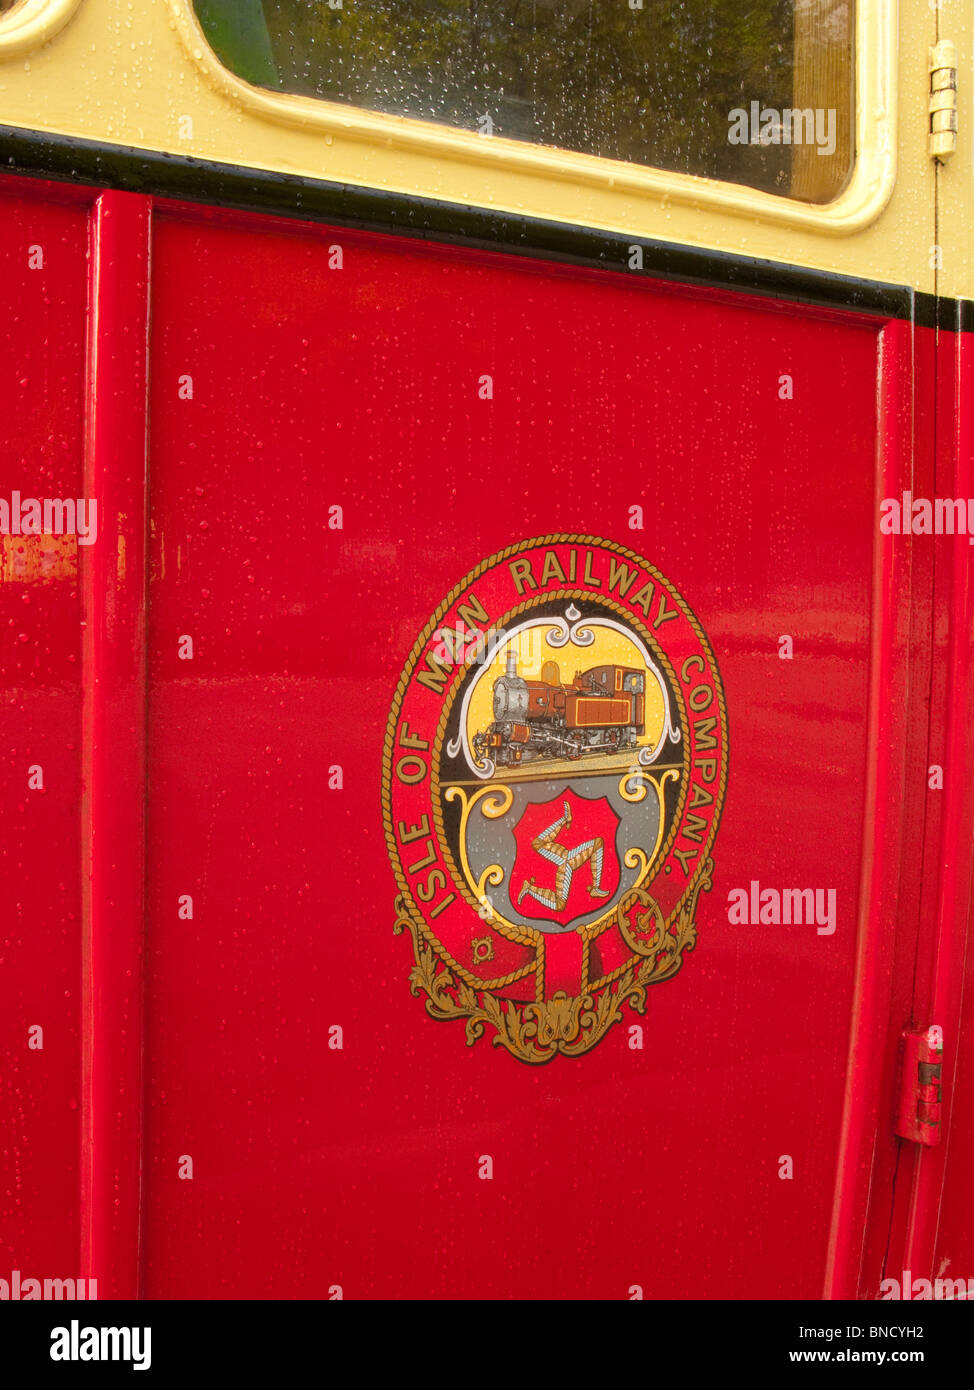 Close up of insignia on steam railway carriage, Isle of man Stock Photo